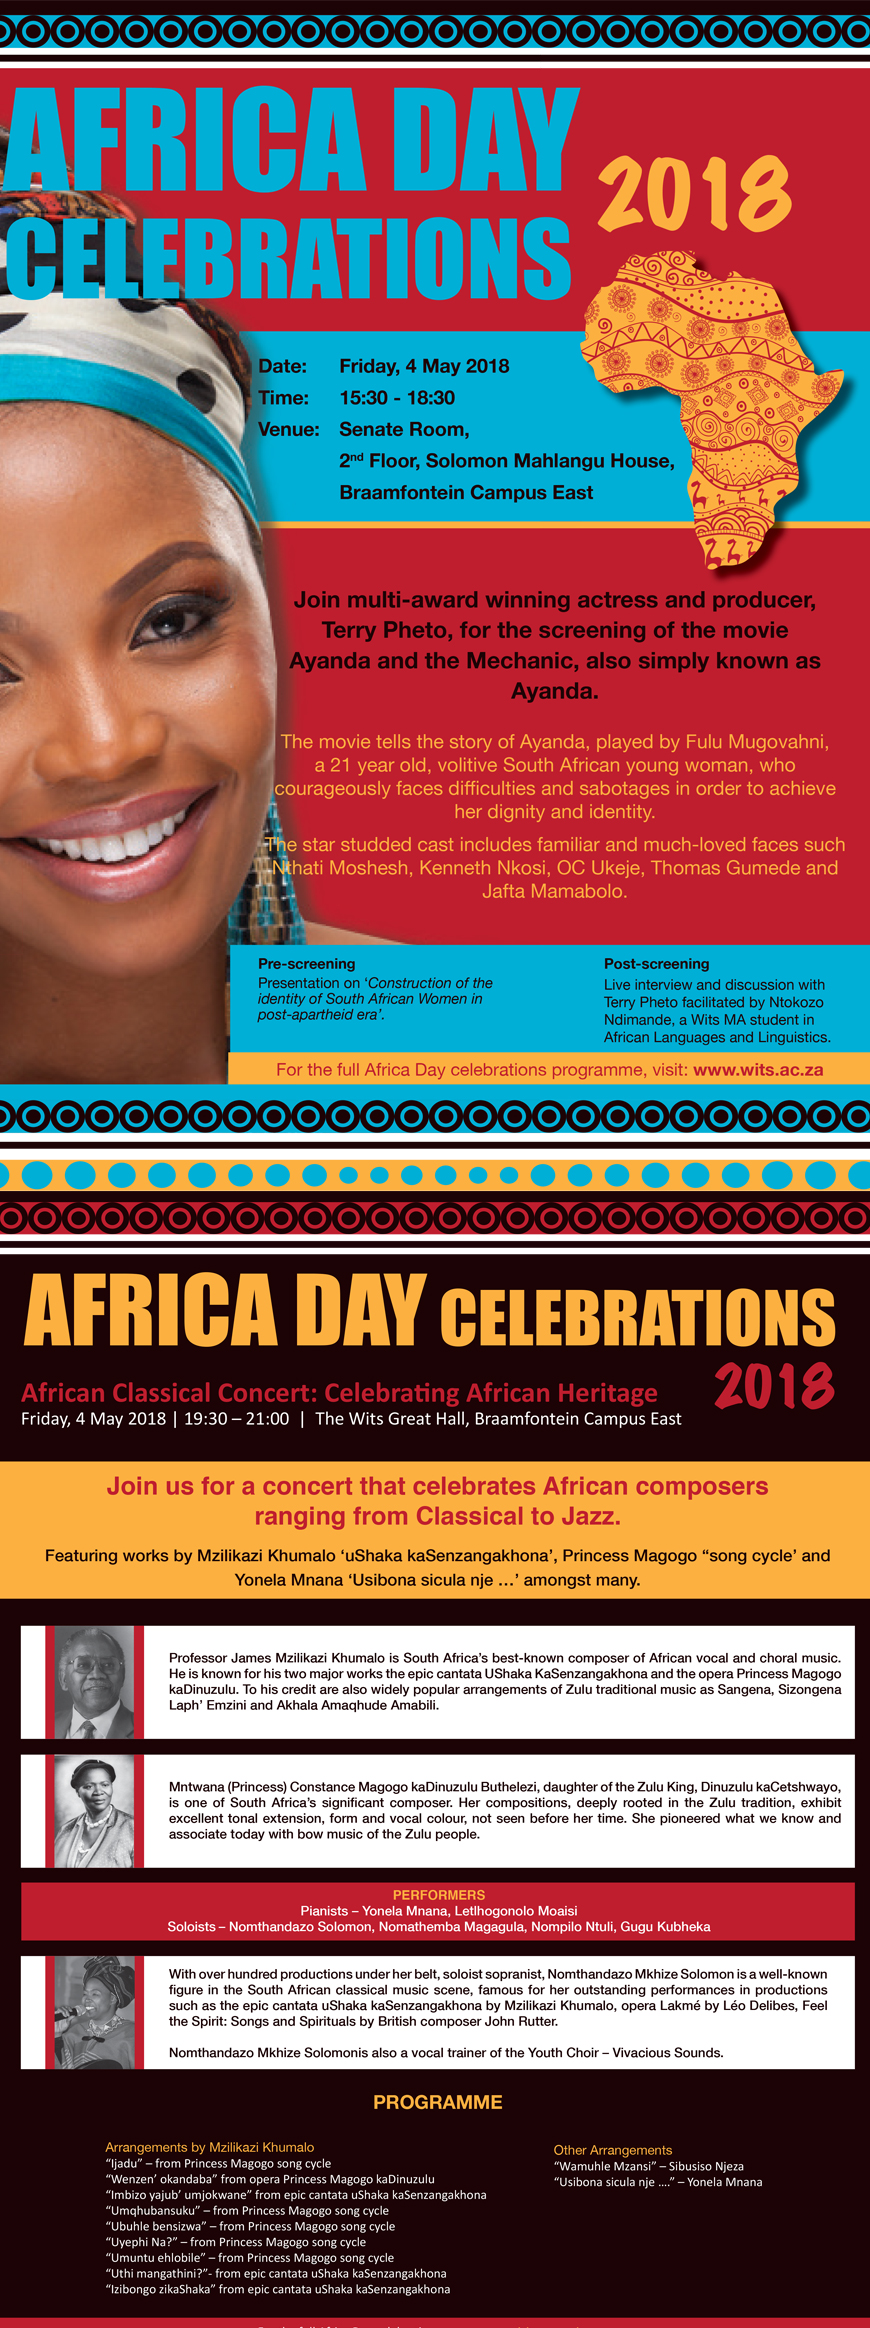 Africa Day 2018 Concerts and Film Screening